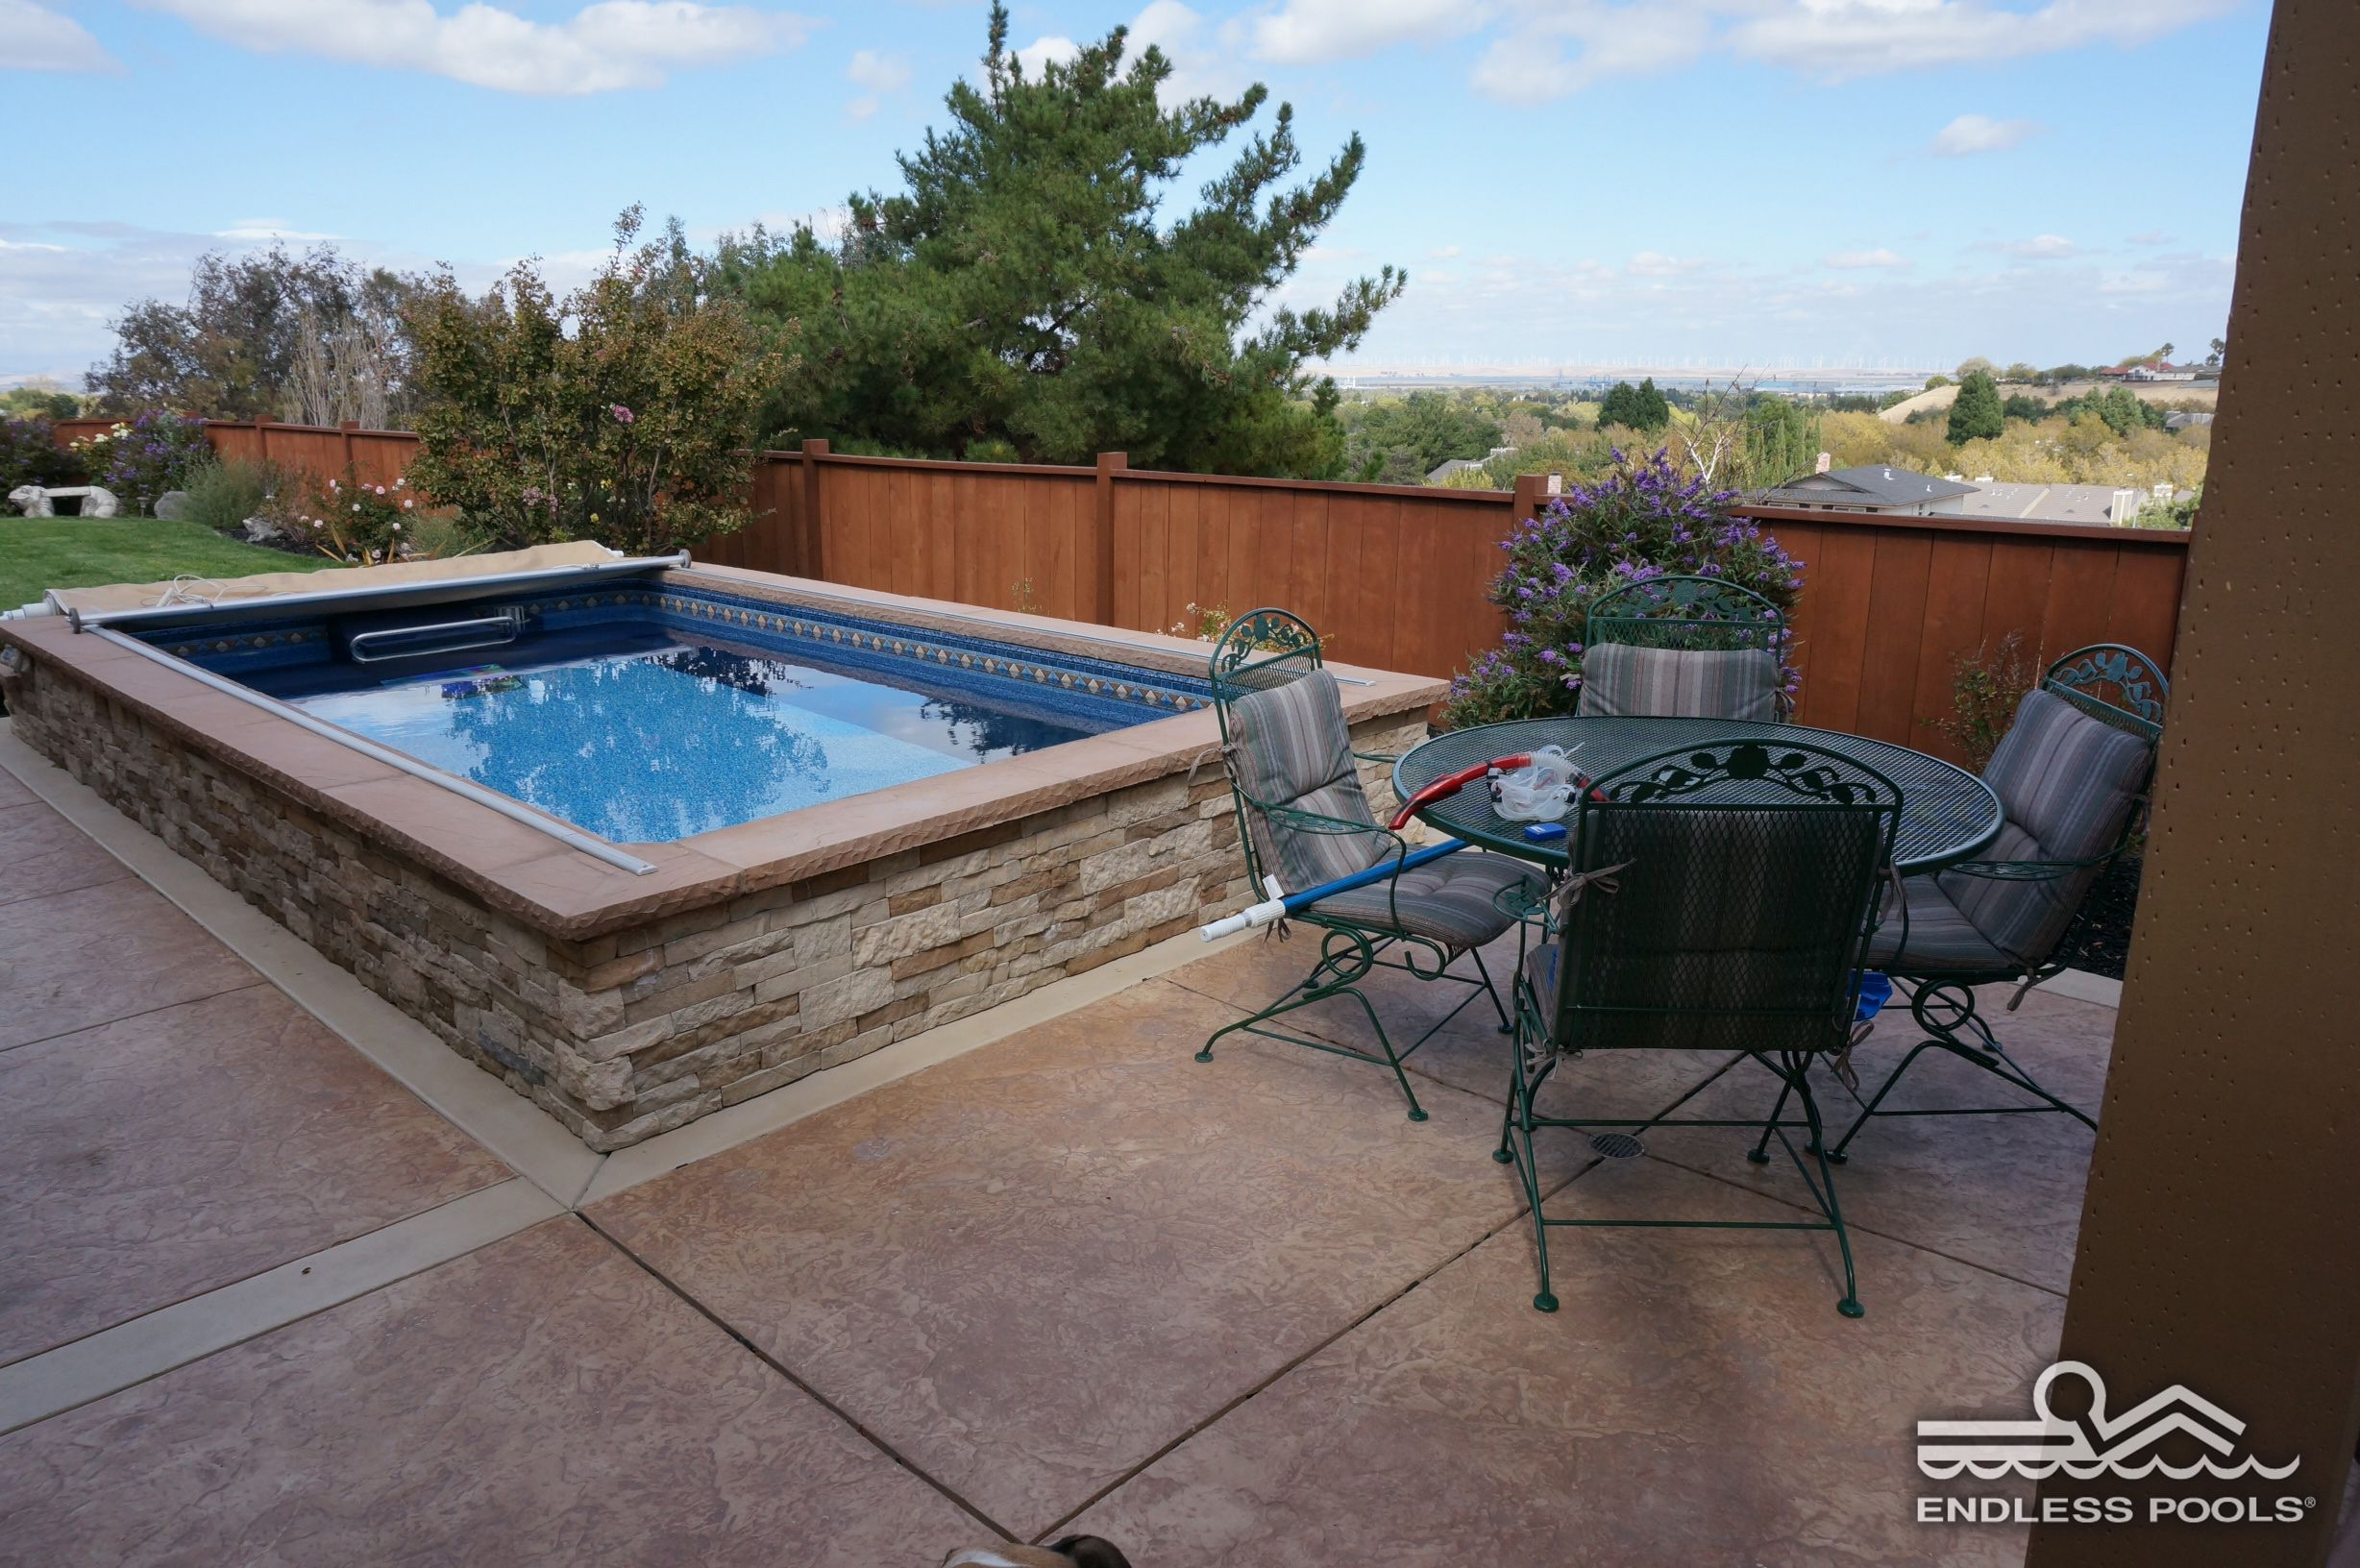 The Endless Pool Can Complete Your Patio Add A Spot For Exercise And Relaxation No Matter How Much Space You Have Endless Pool Small Pools Pool Houses